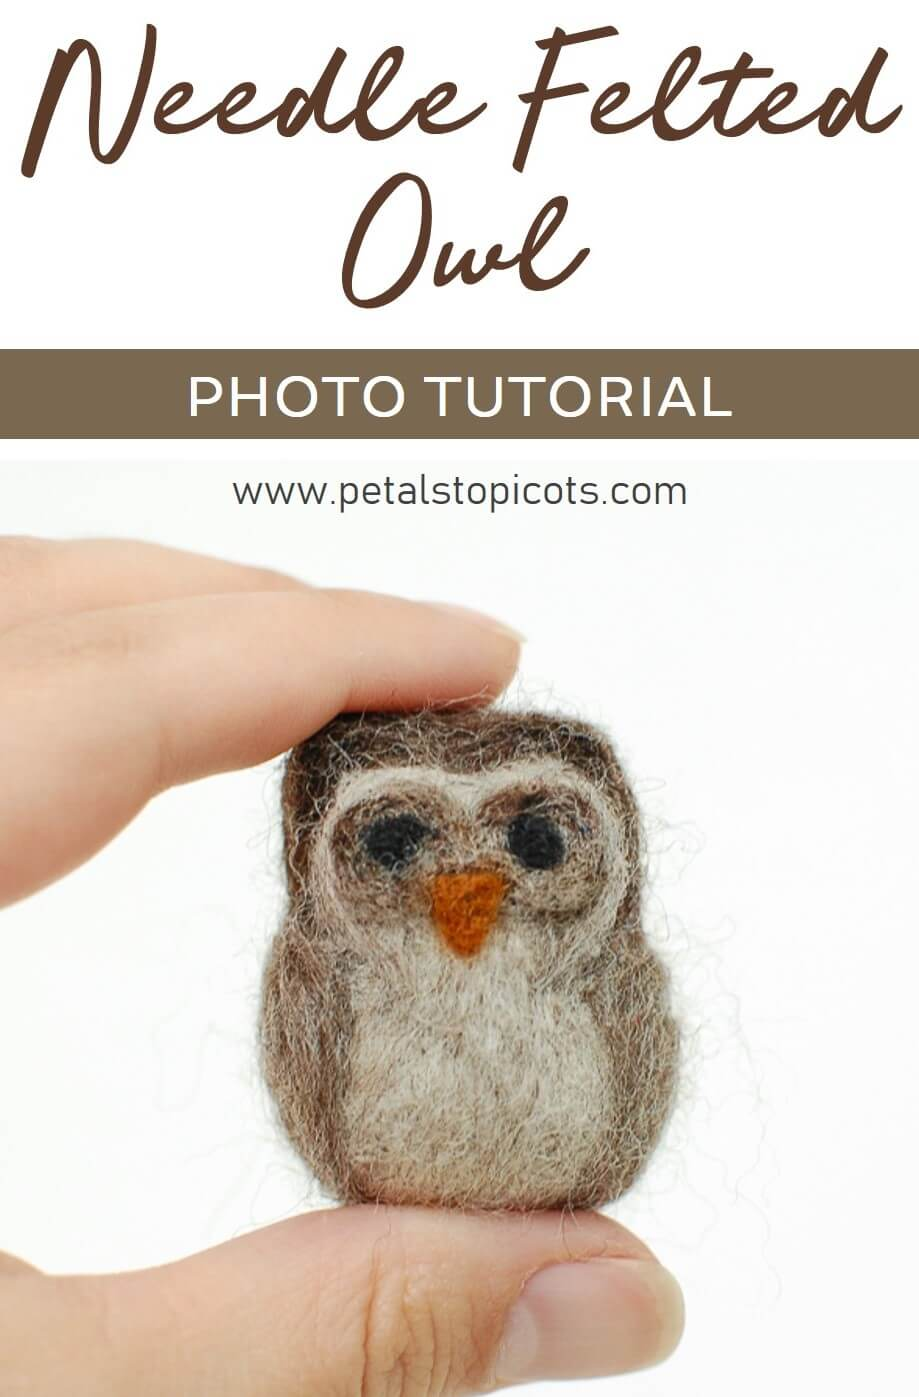 Learn how to make this sweet needle felted woolly owl ... step by step photo tutorial. #petalstopicots